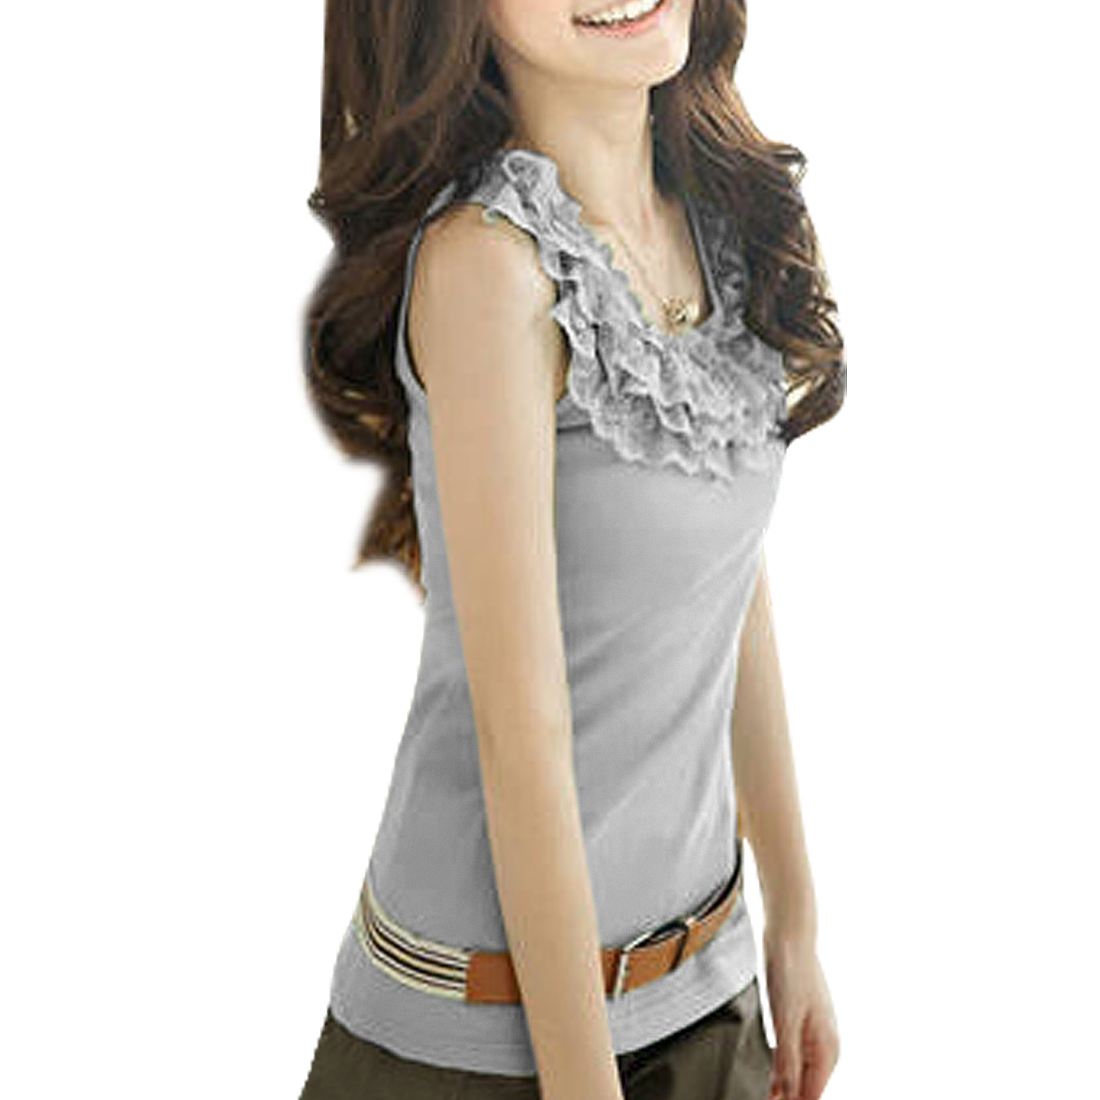 Sleeveless Close Fitting Tank Top Gray XS for Women